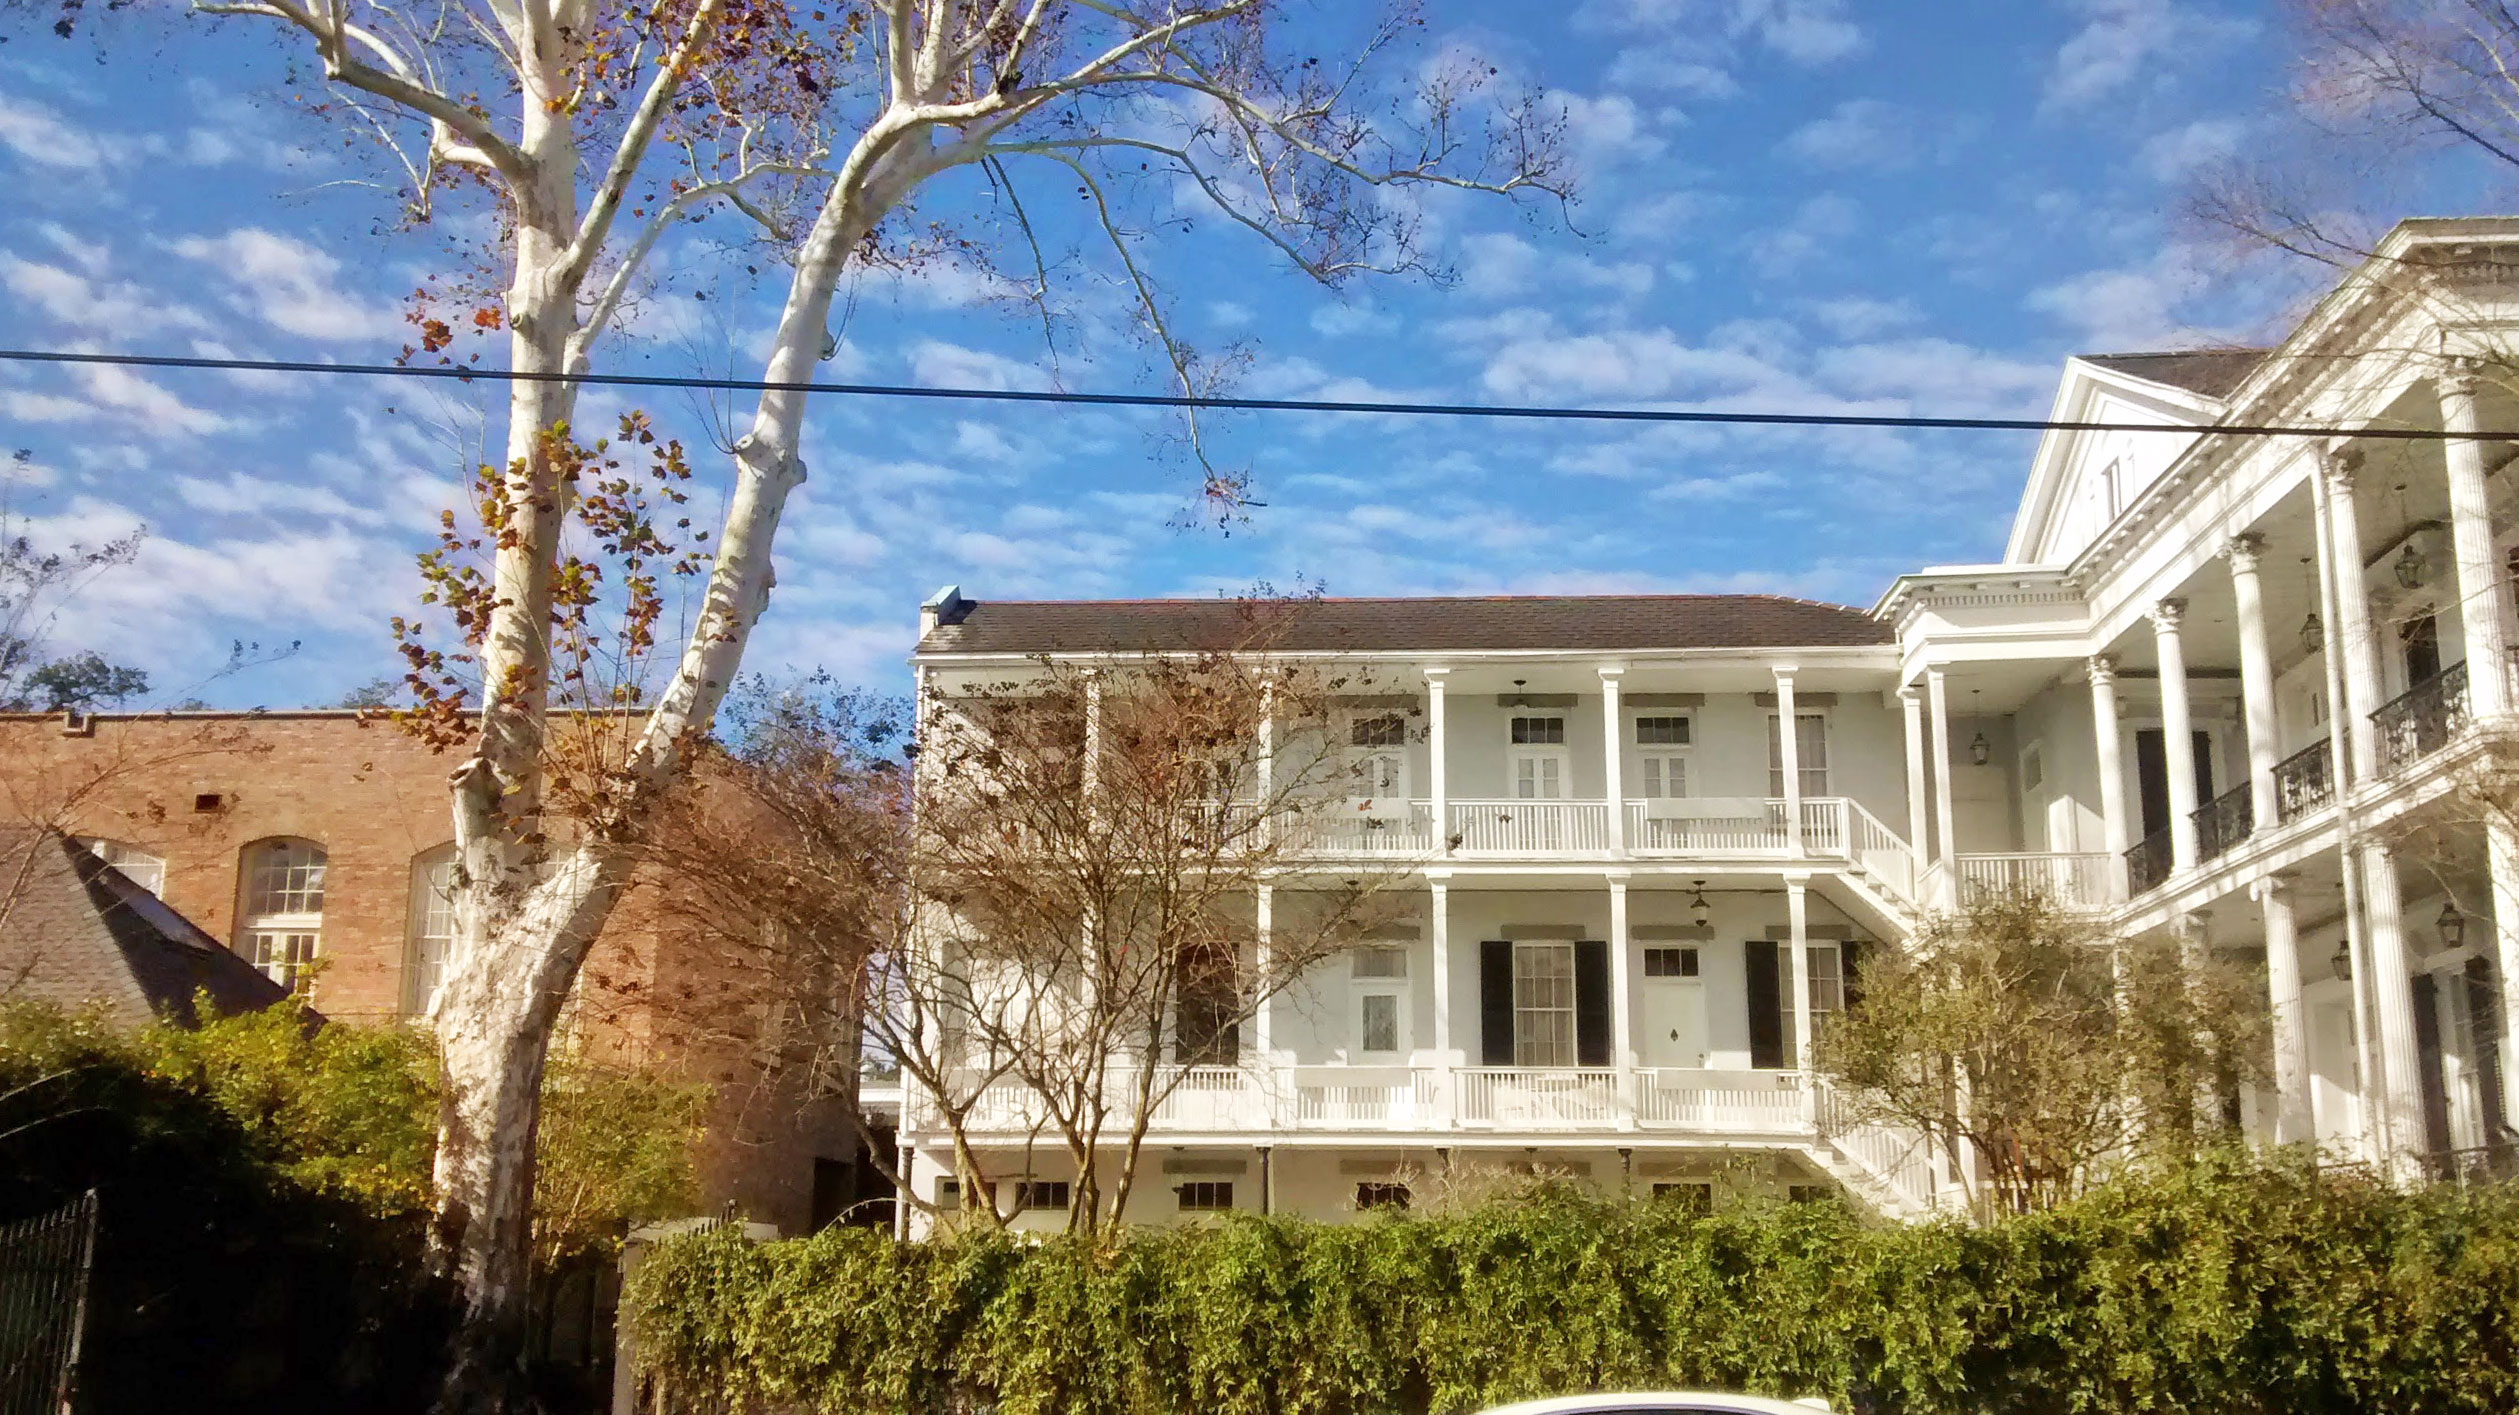 GardenDistrict 1024x575 - Visiting New Orleans In January: Top 8 Things To Do